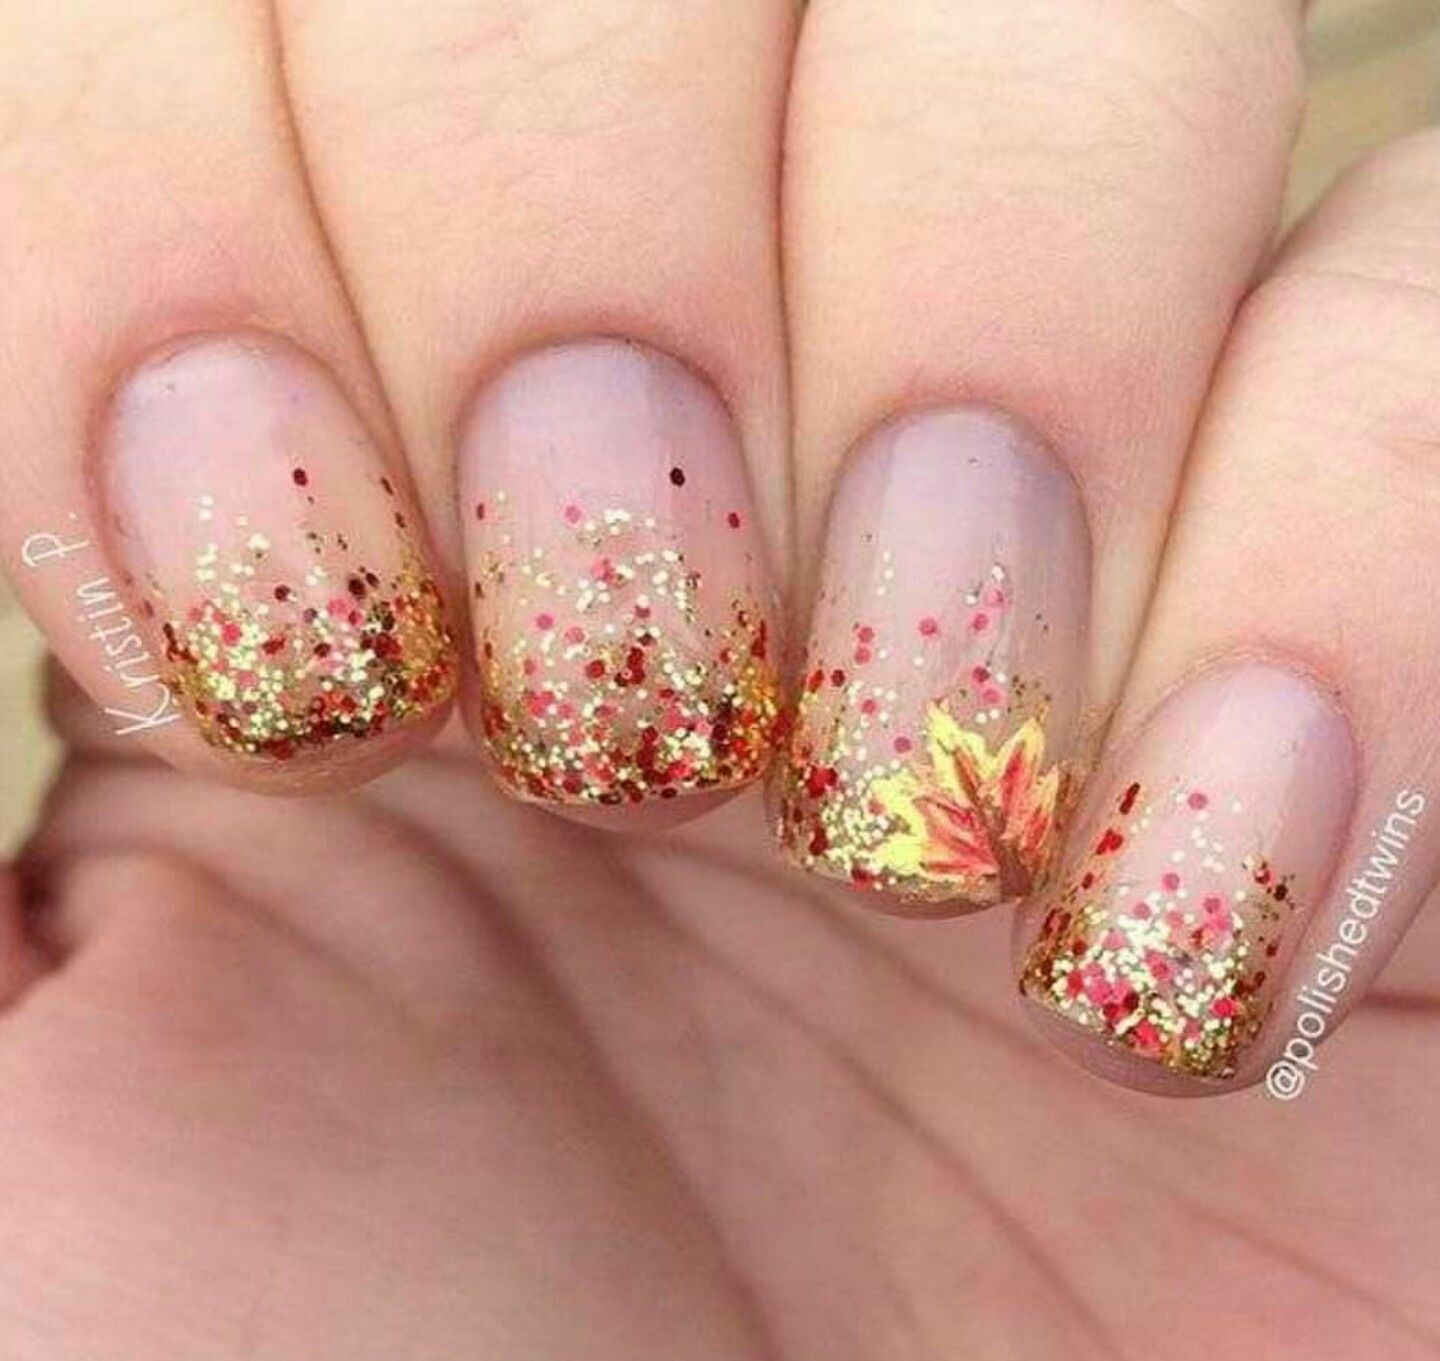 Pin by Sienna Lytle on Nails | Pinterest | Autumn nails